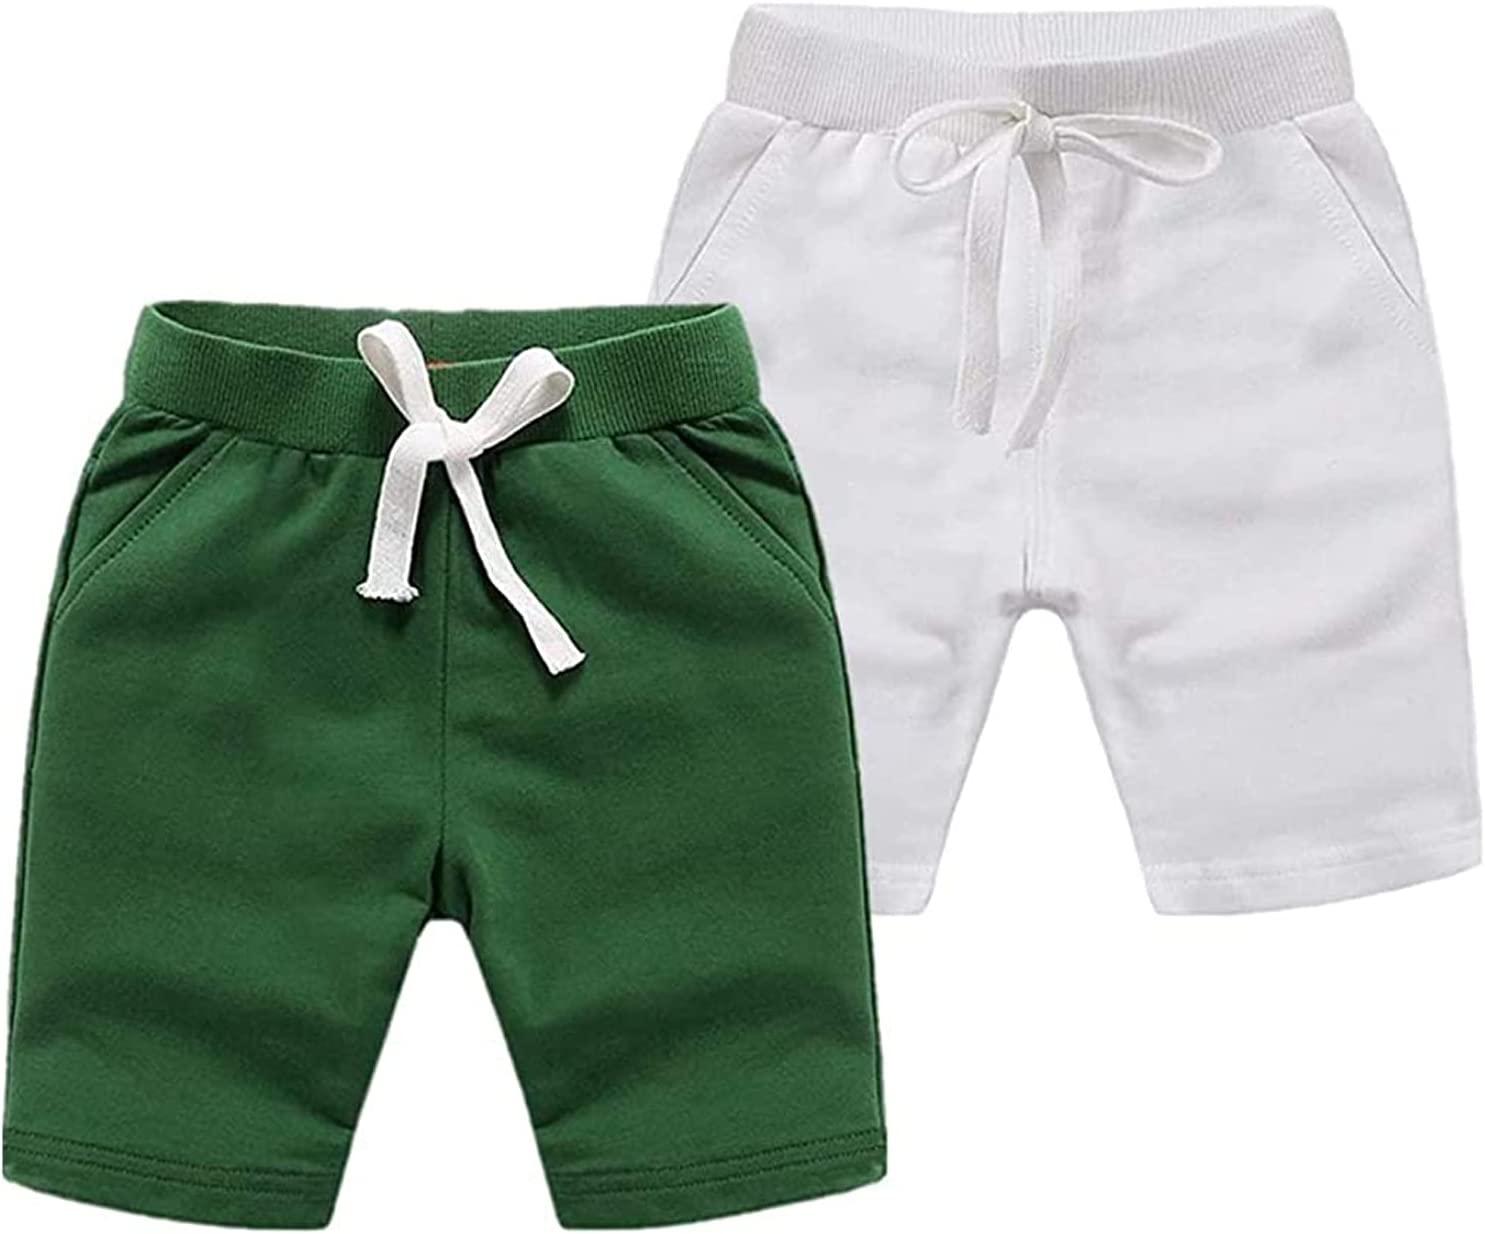 Toddler Baby Boys Girls Cotton Today's only Soft Comfort Shorts Beach 40% OFF Cheap Sale